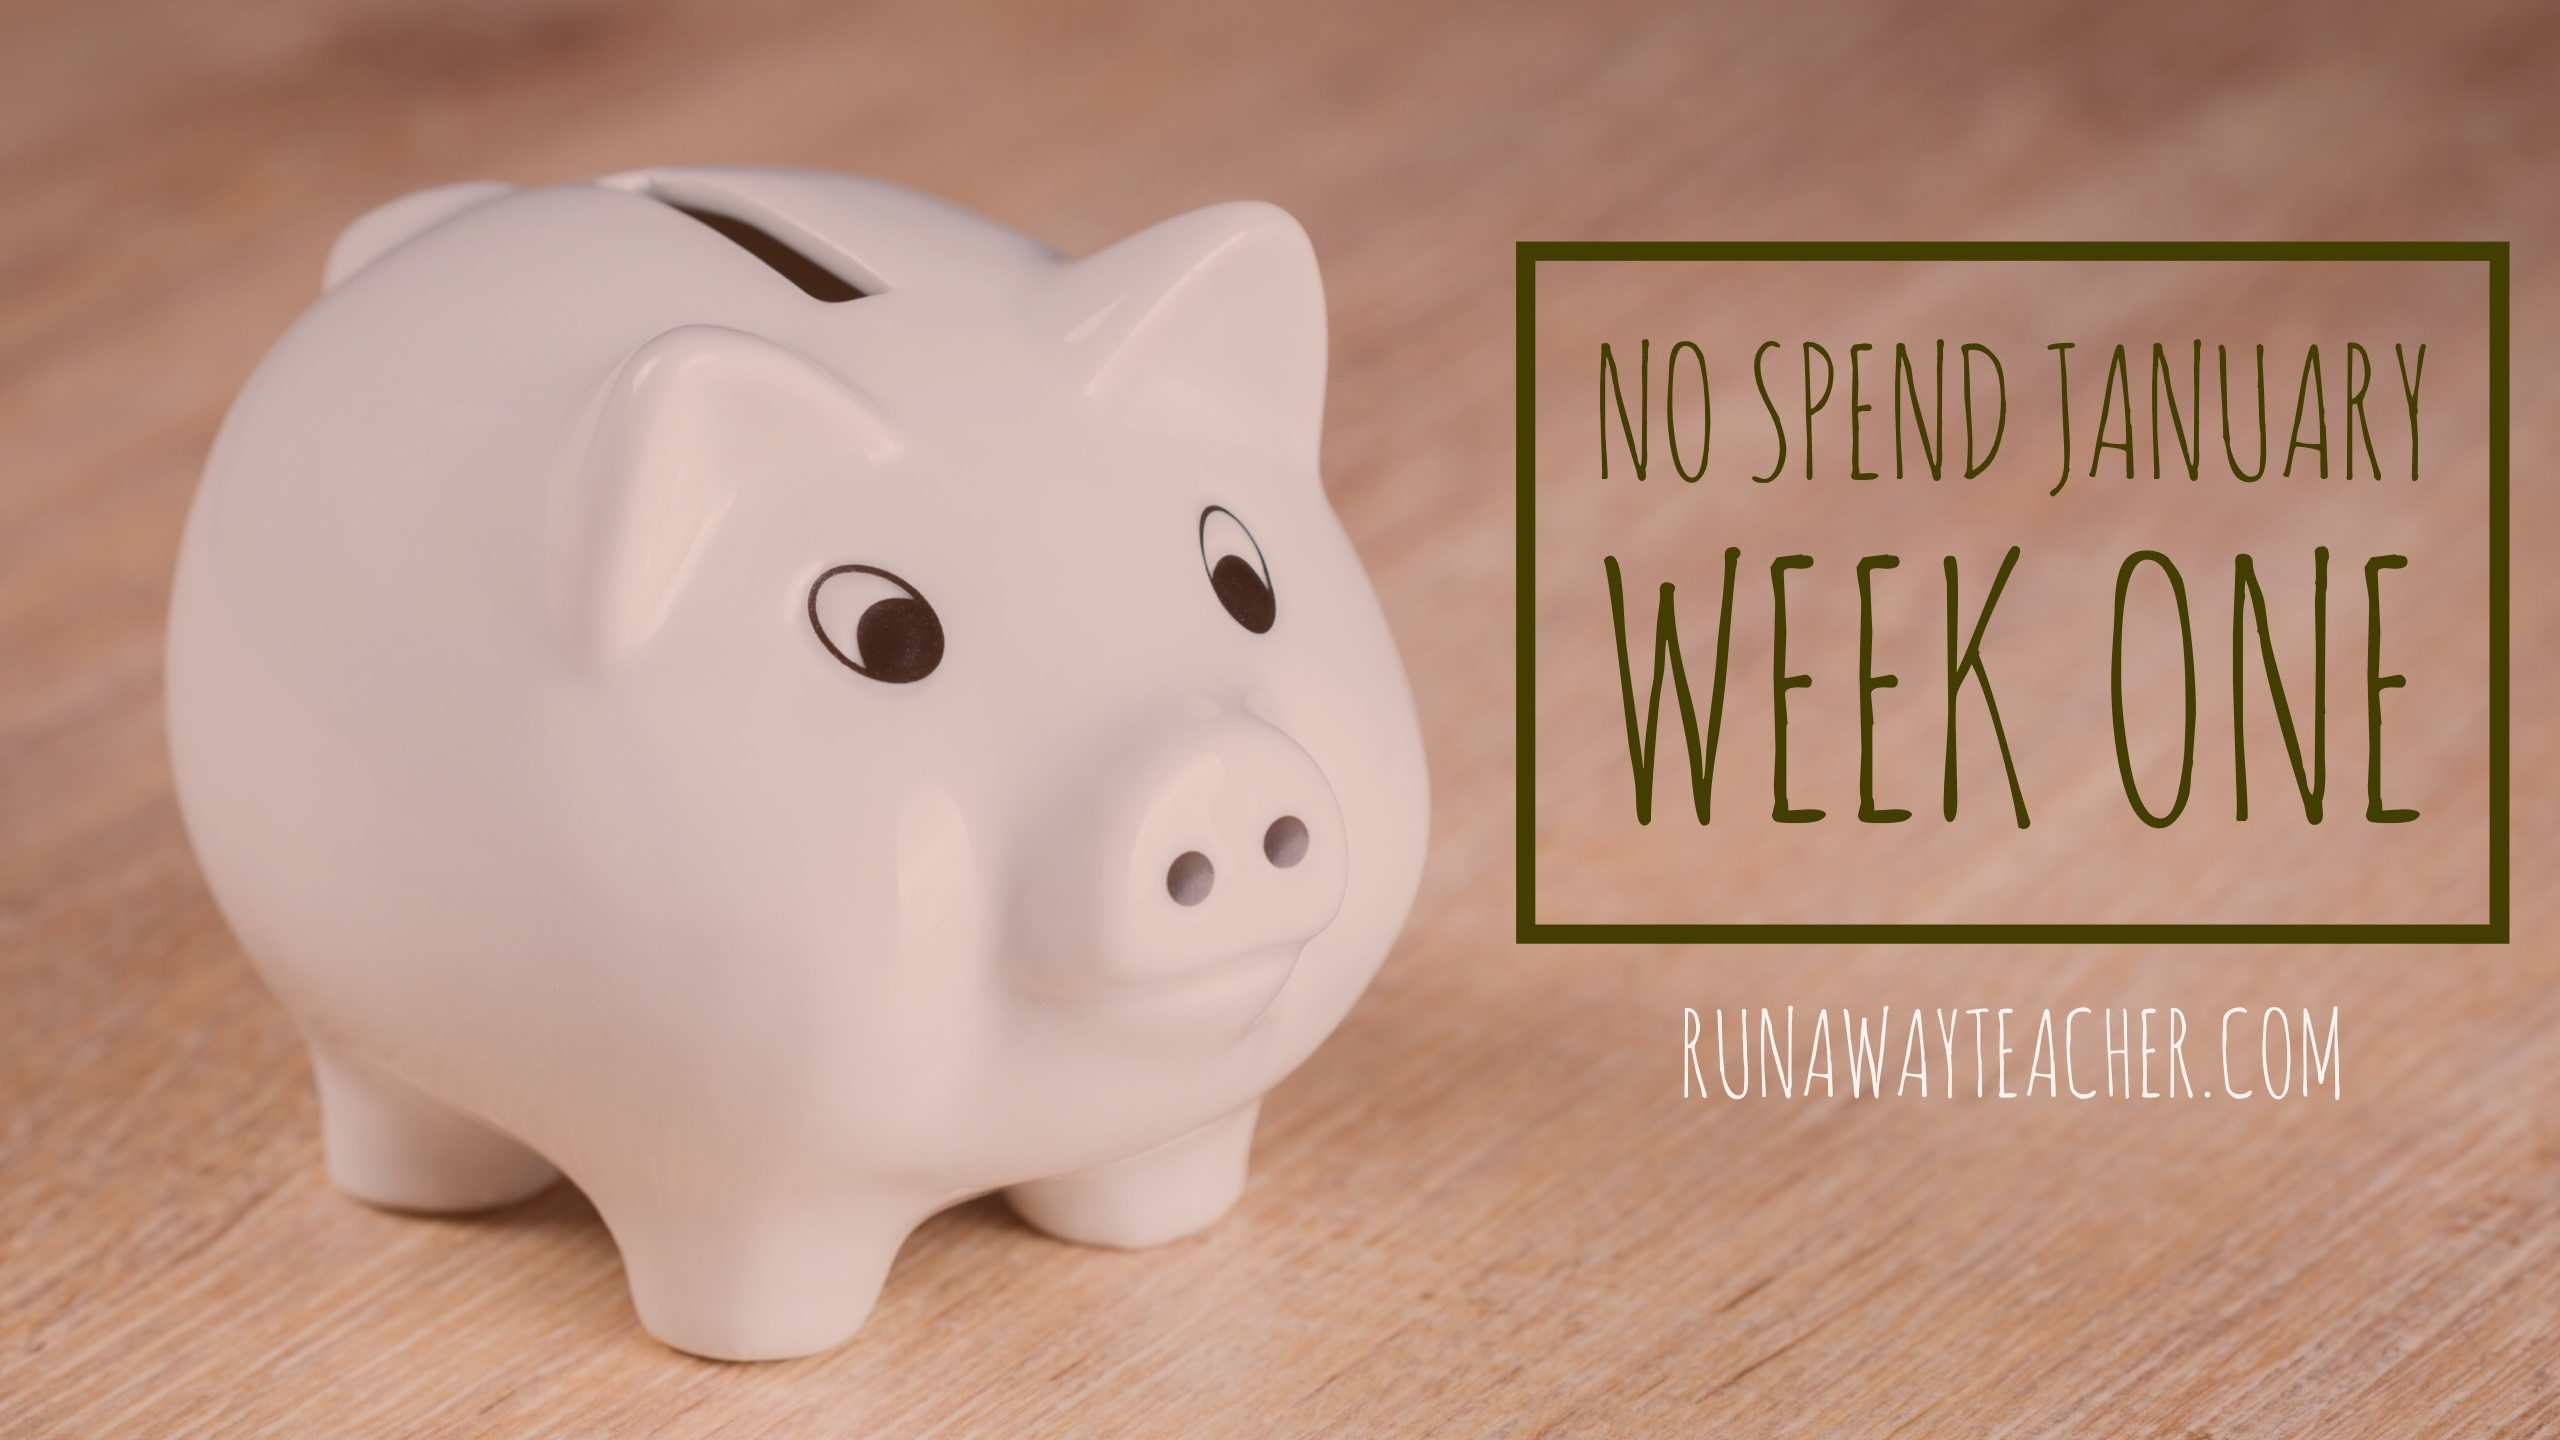 No spend January week 1